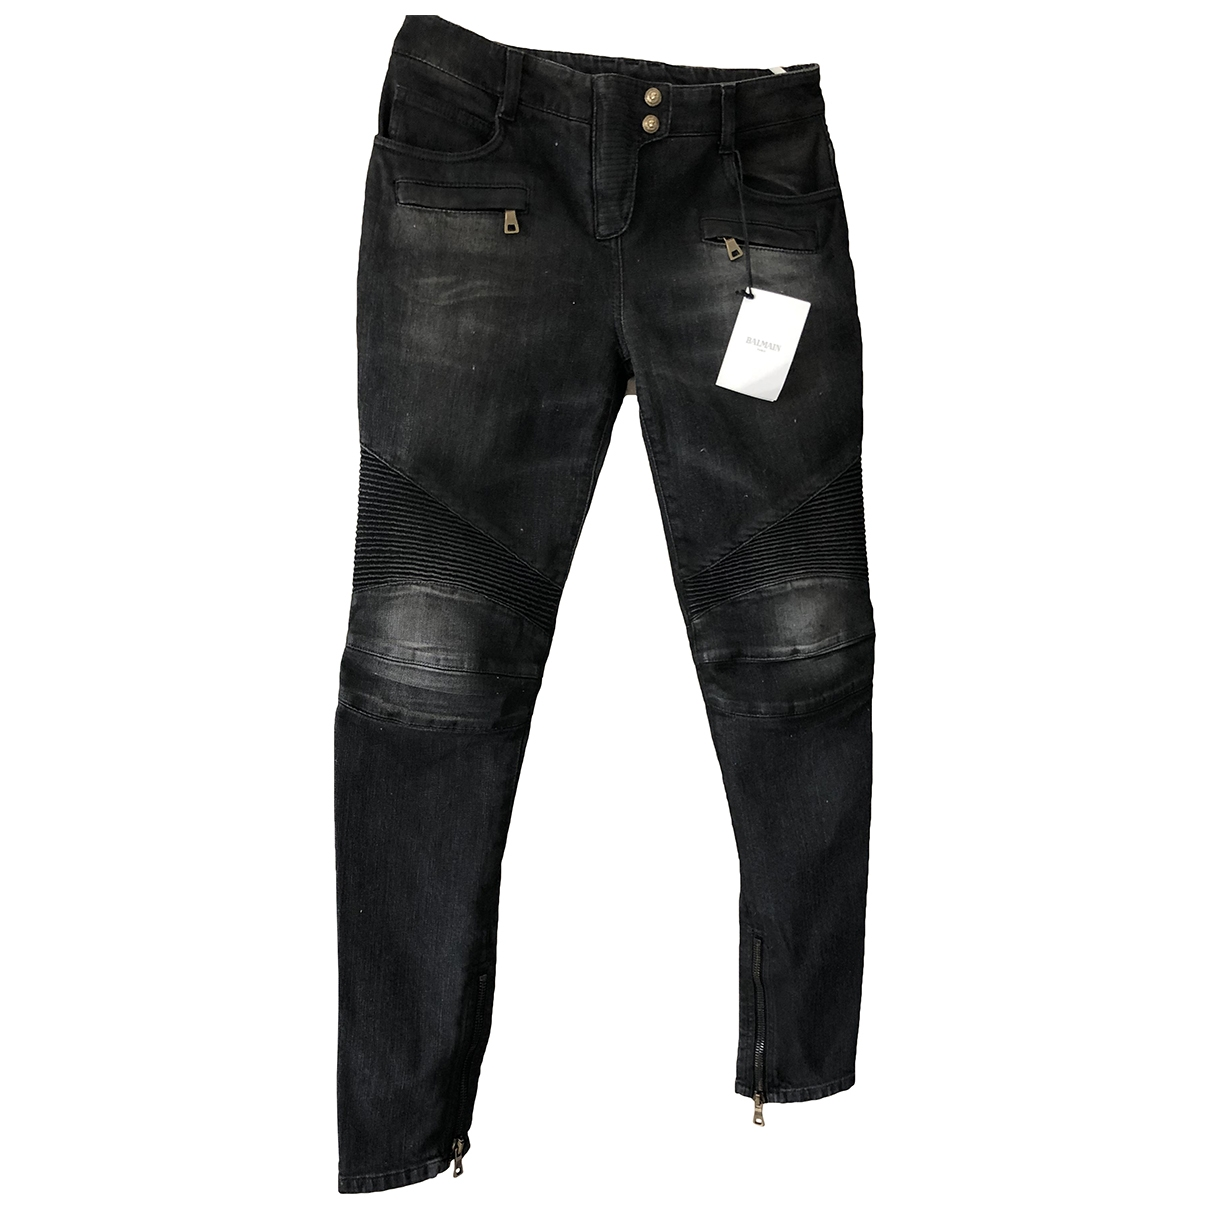 Balmain \N Grey Denim - Jeans Jeans for Women 38 FR